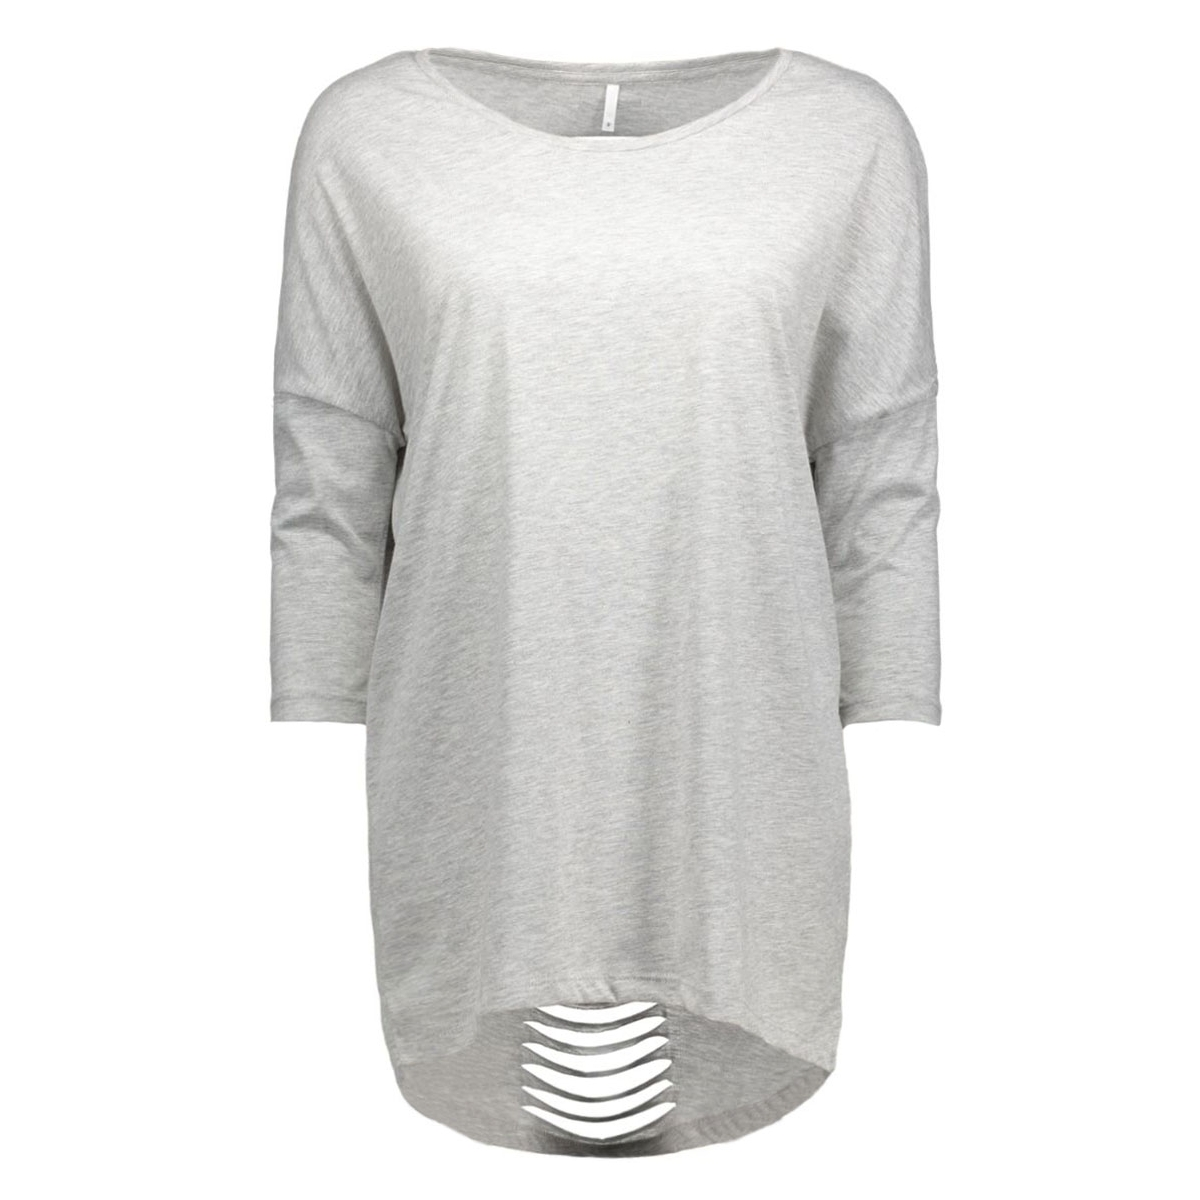 onlabbie 3/4 lacer cut top ess 15118738 only t-shirt light grey melange